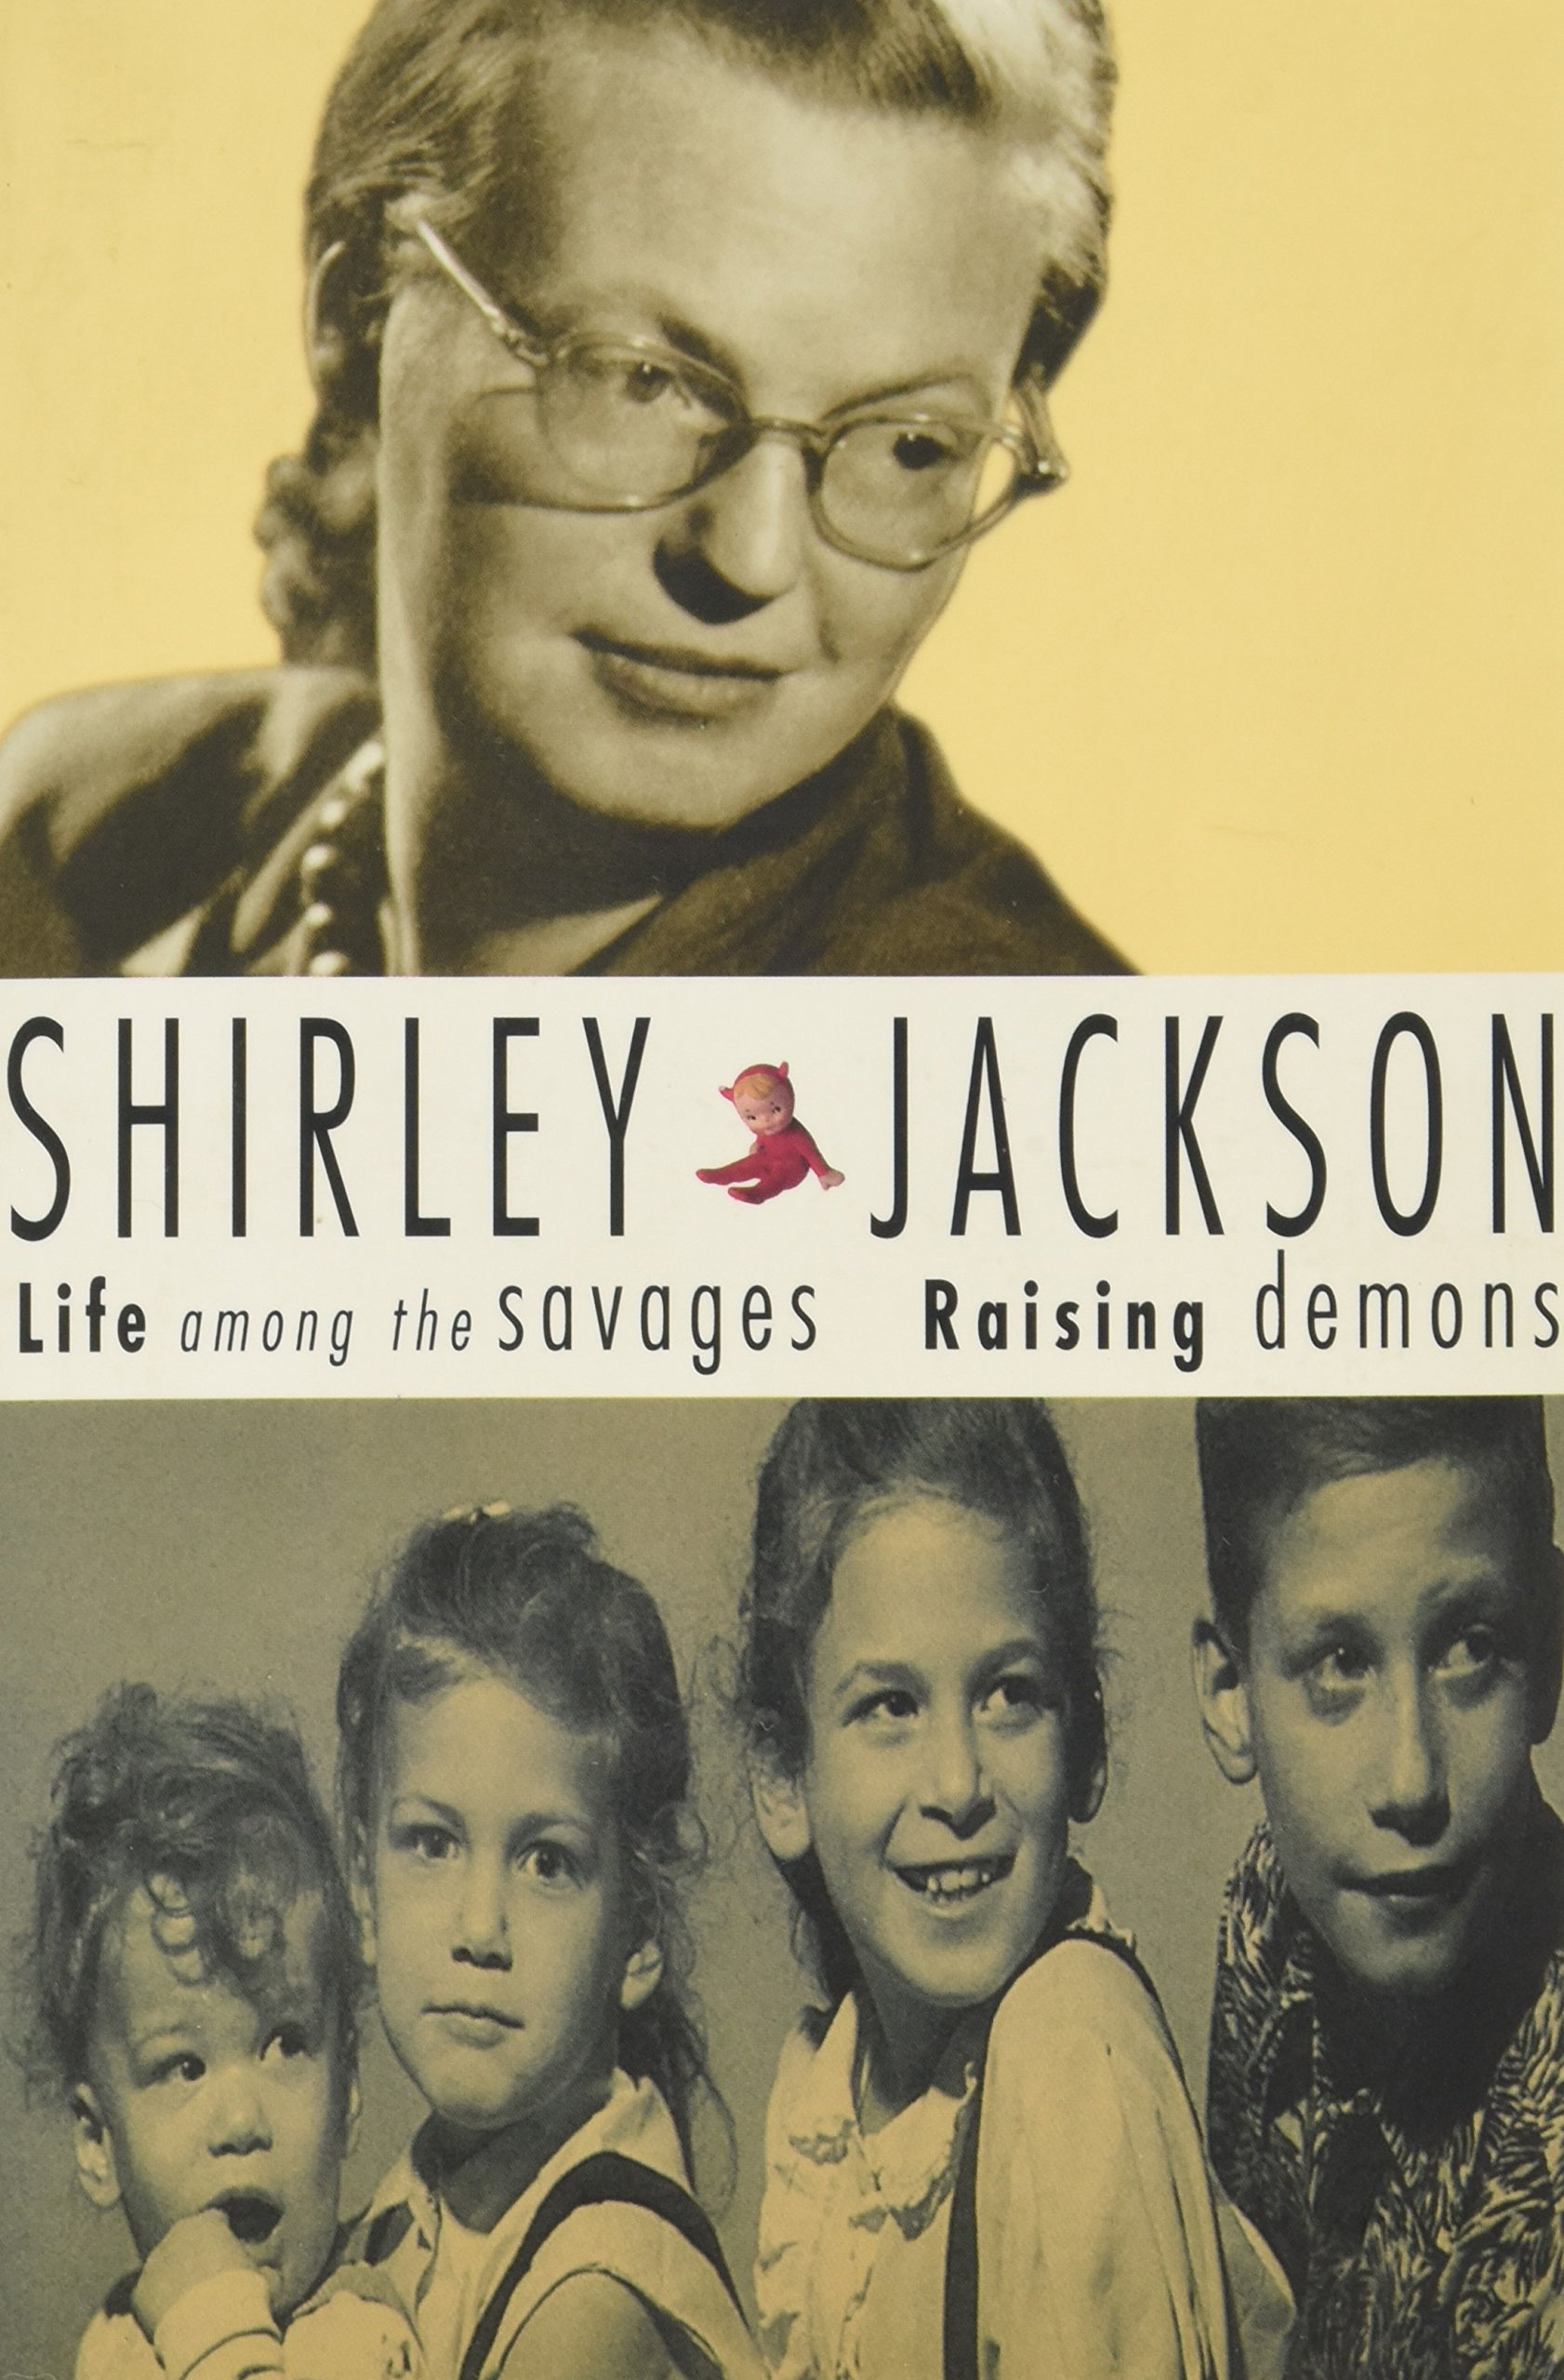 Life among the savages raising demons shirley jackson life among the savages raising demons shirley jackson 9780965780063 amazon books fandeluxe Gallery